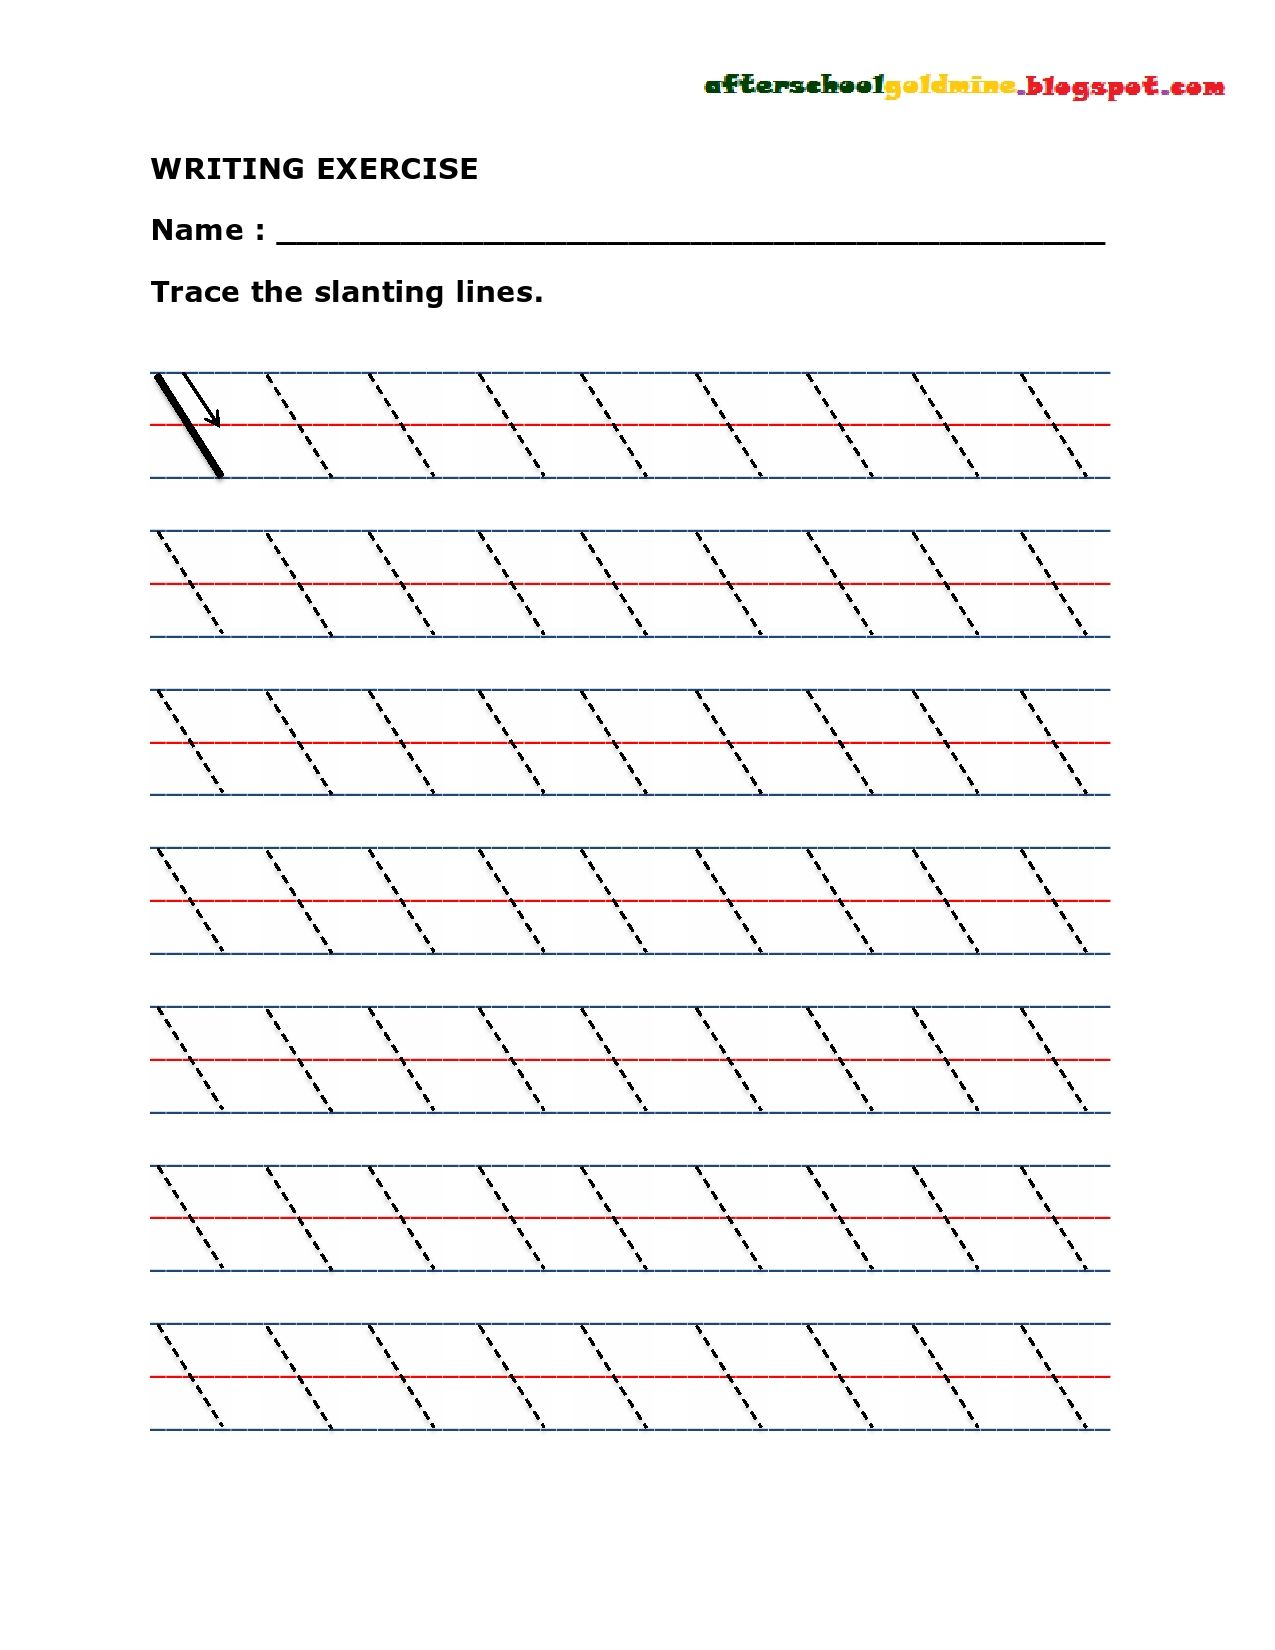 WRITING EXERCISE trace lines diagonal WRITING EXERCISES trace – Tracing Lines Worksheets